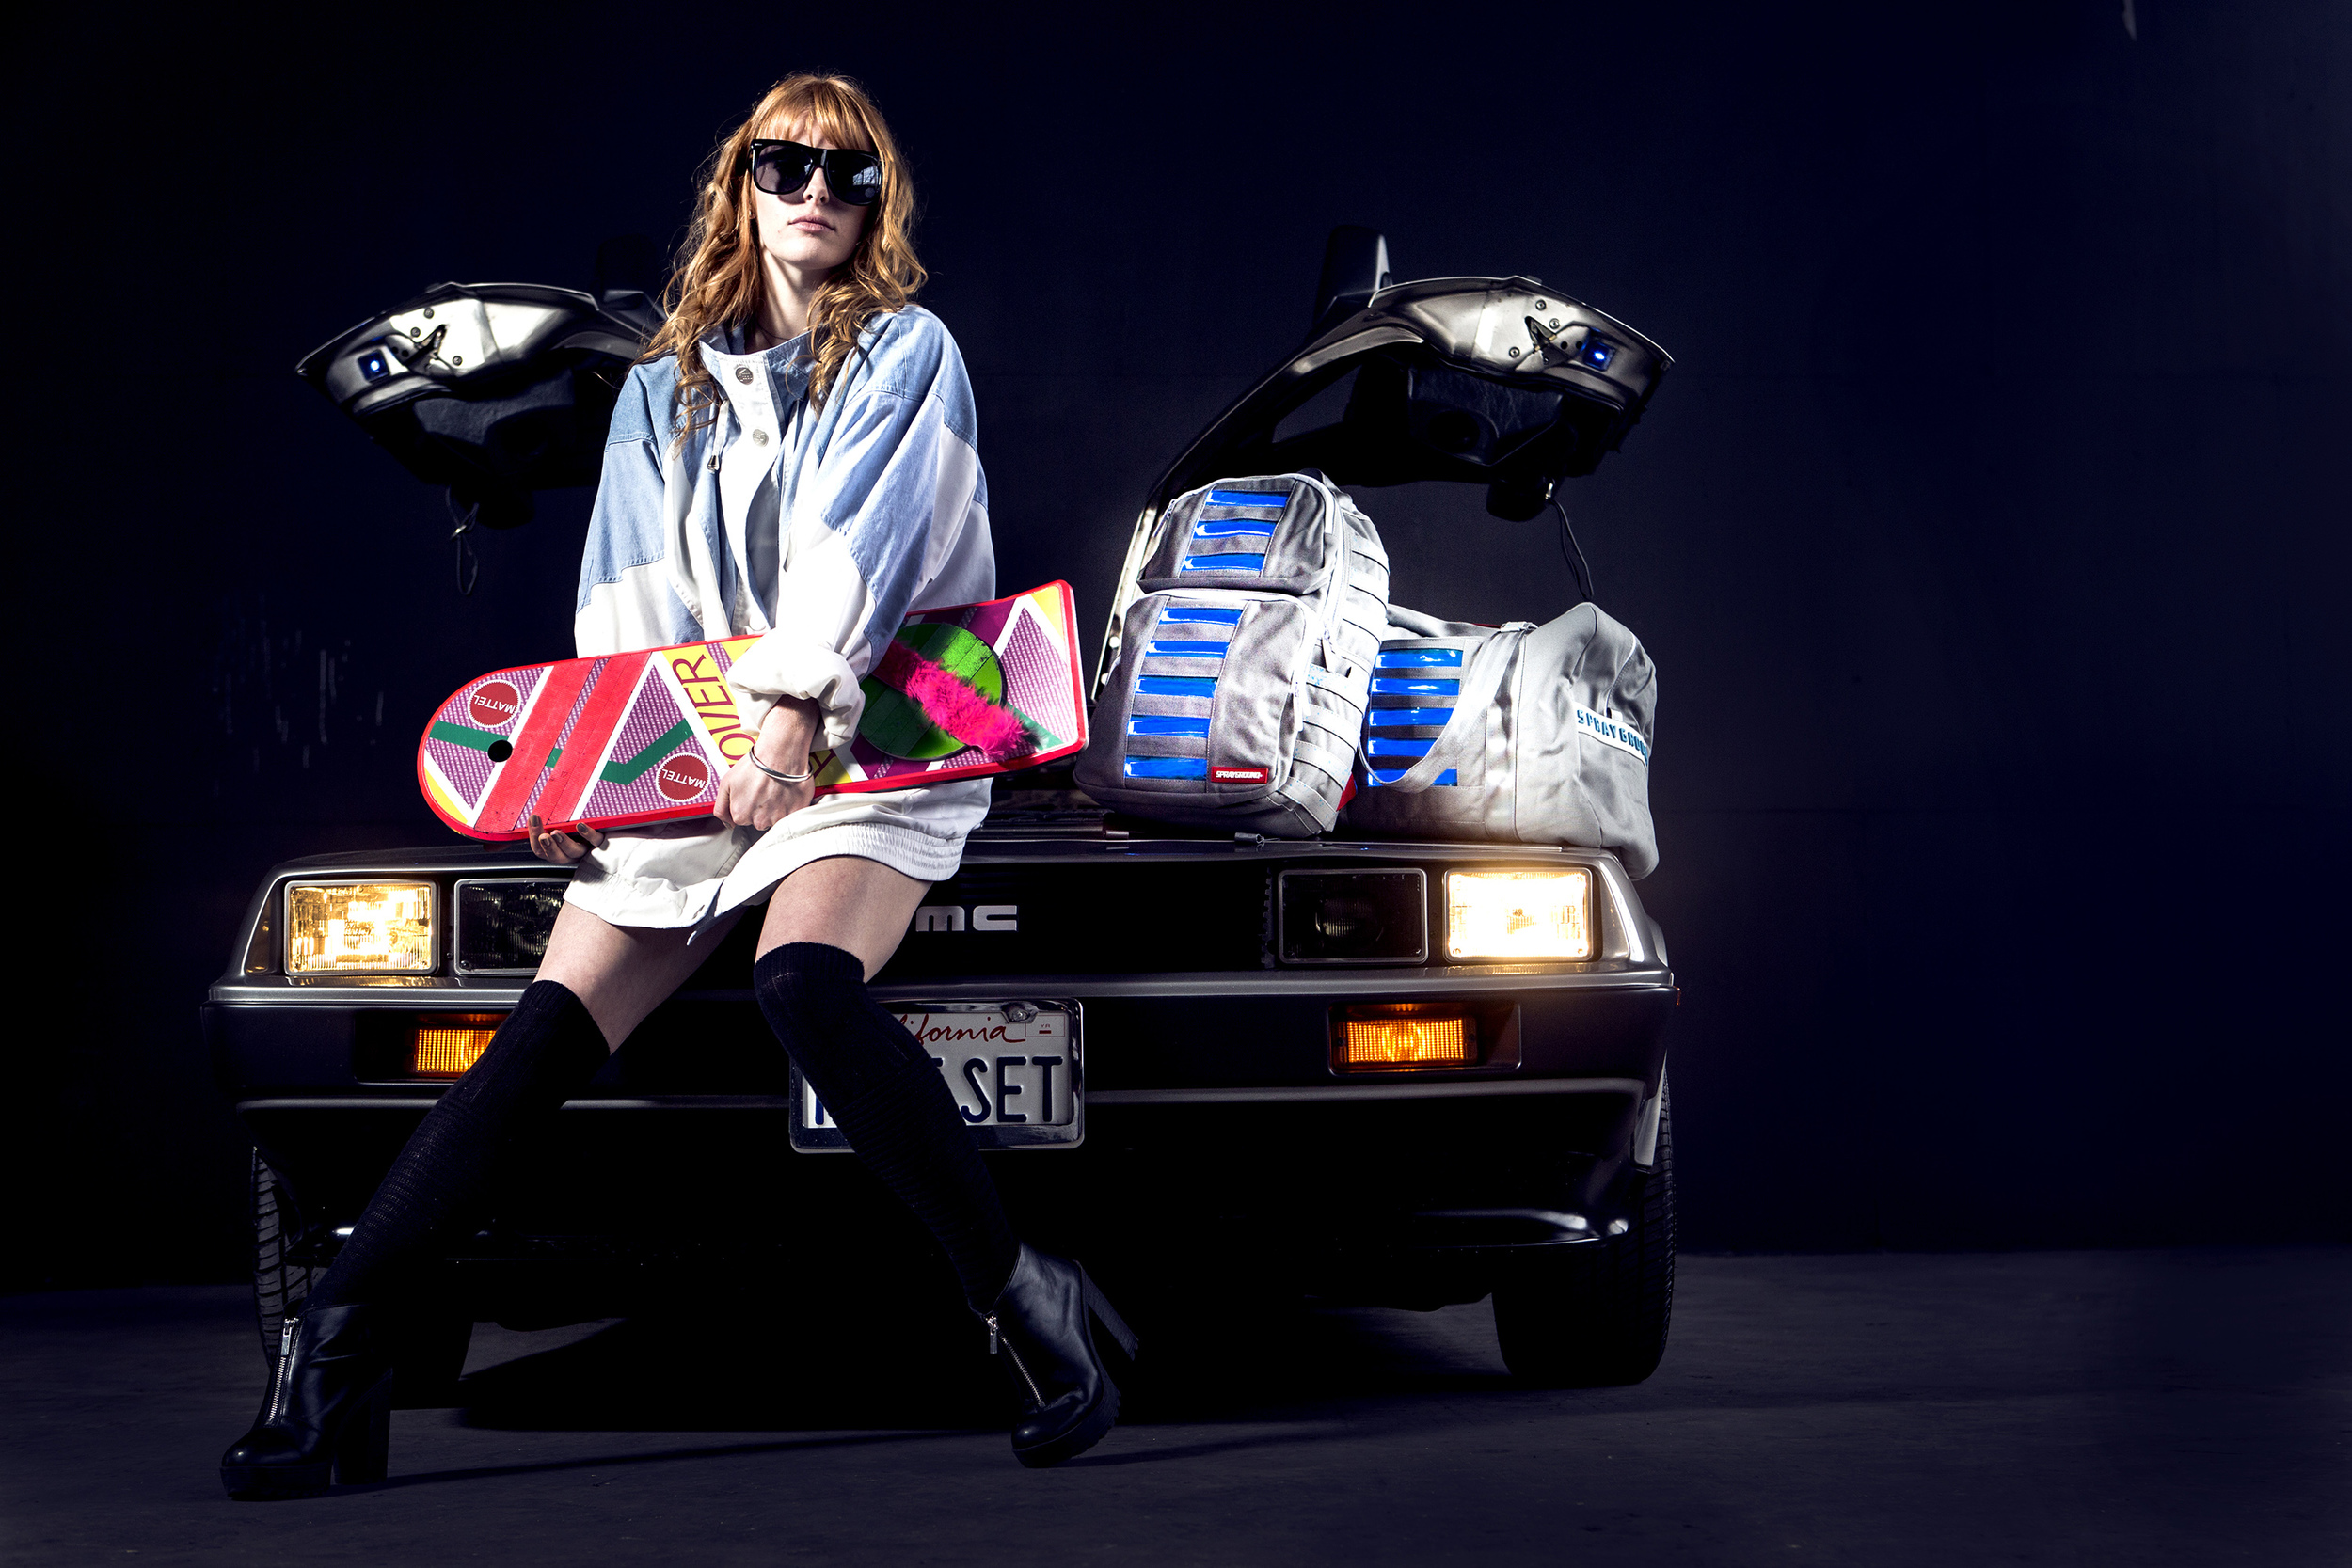 sprayground high snobiety smac justfeng photography editorial street dreams back to the future